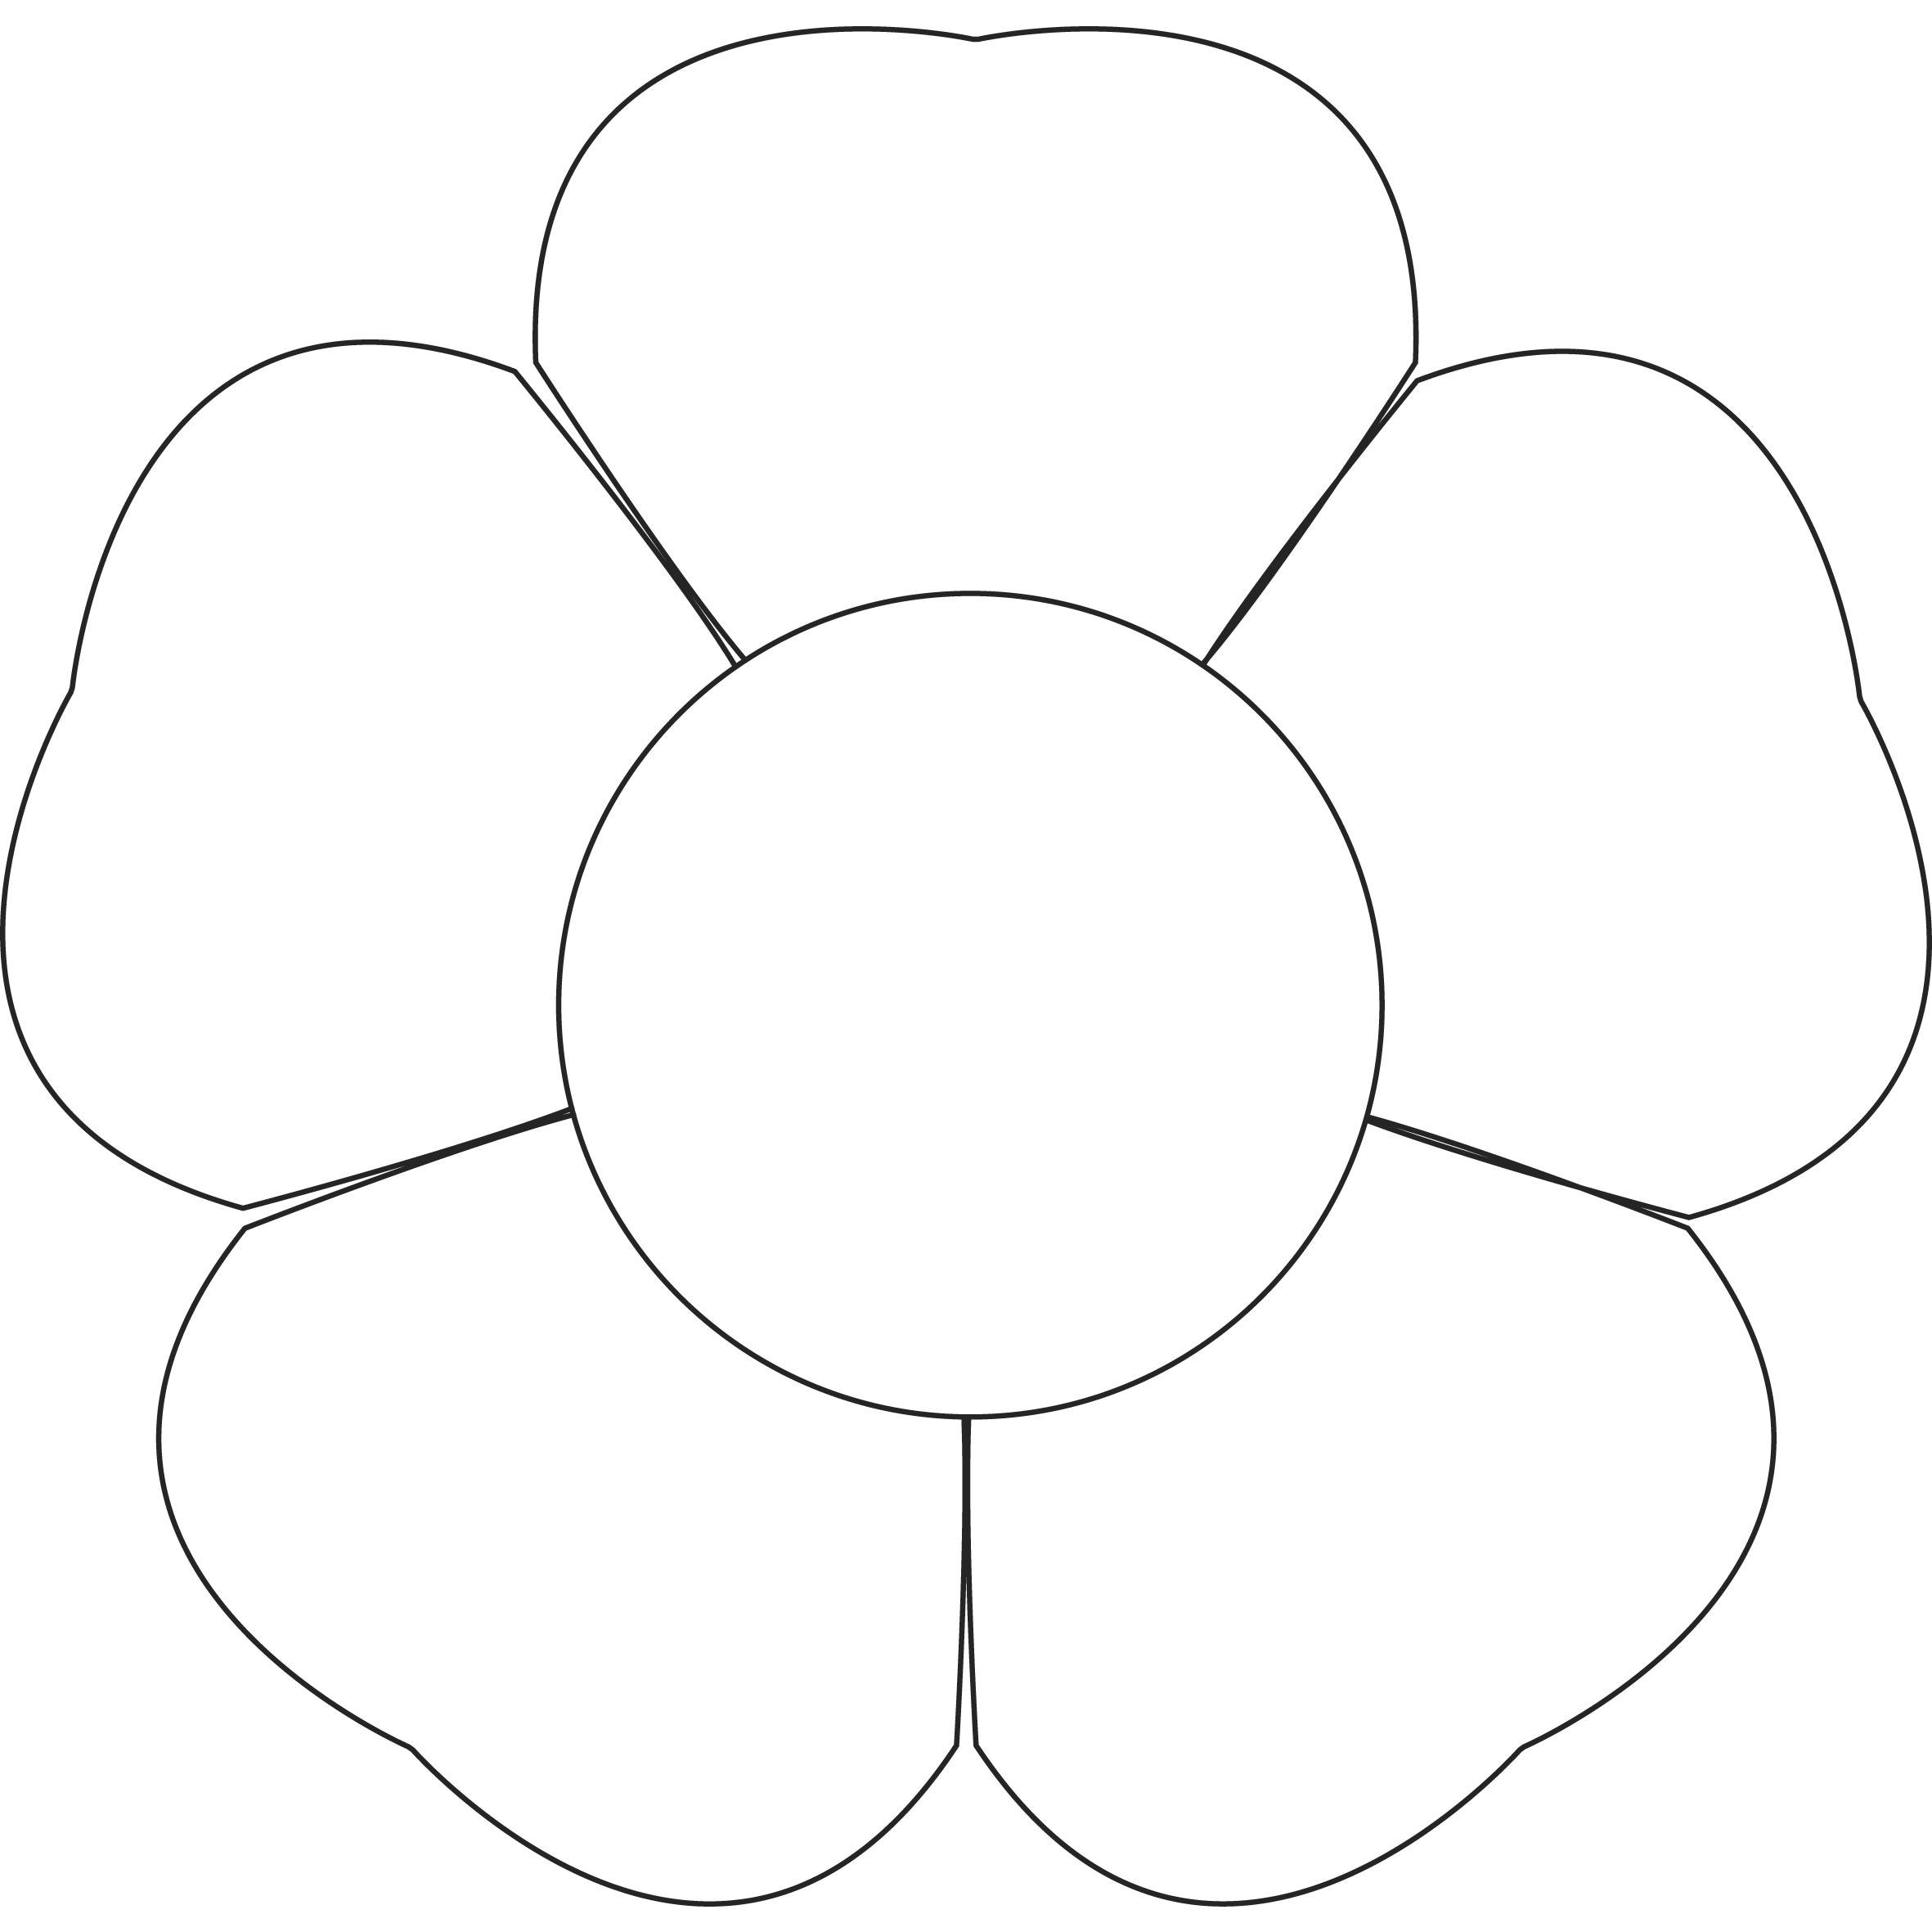 5 petal flower coloring page petal paintings search result at paintingvalleycom coloring flower page 5 petal